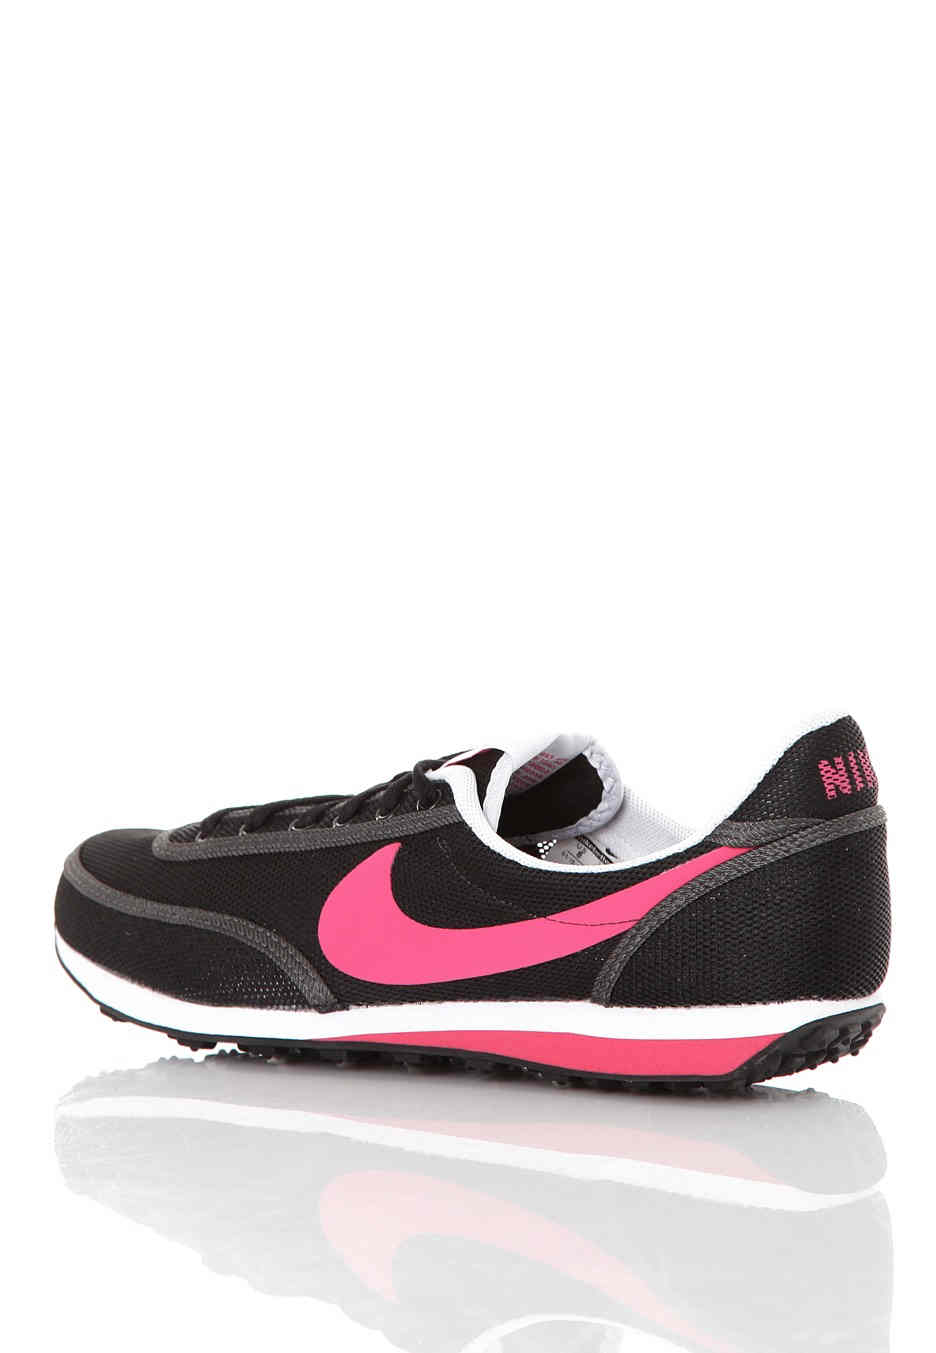 Trends For New Nike Shoes 2014 For Girls